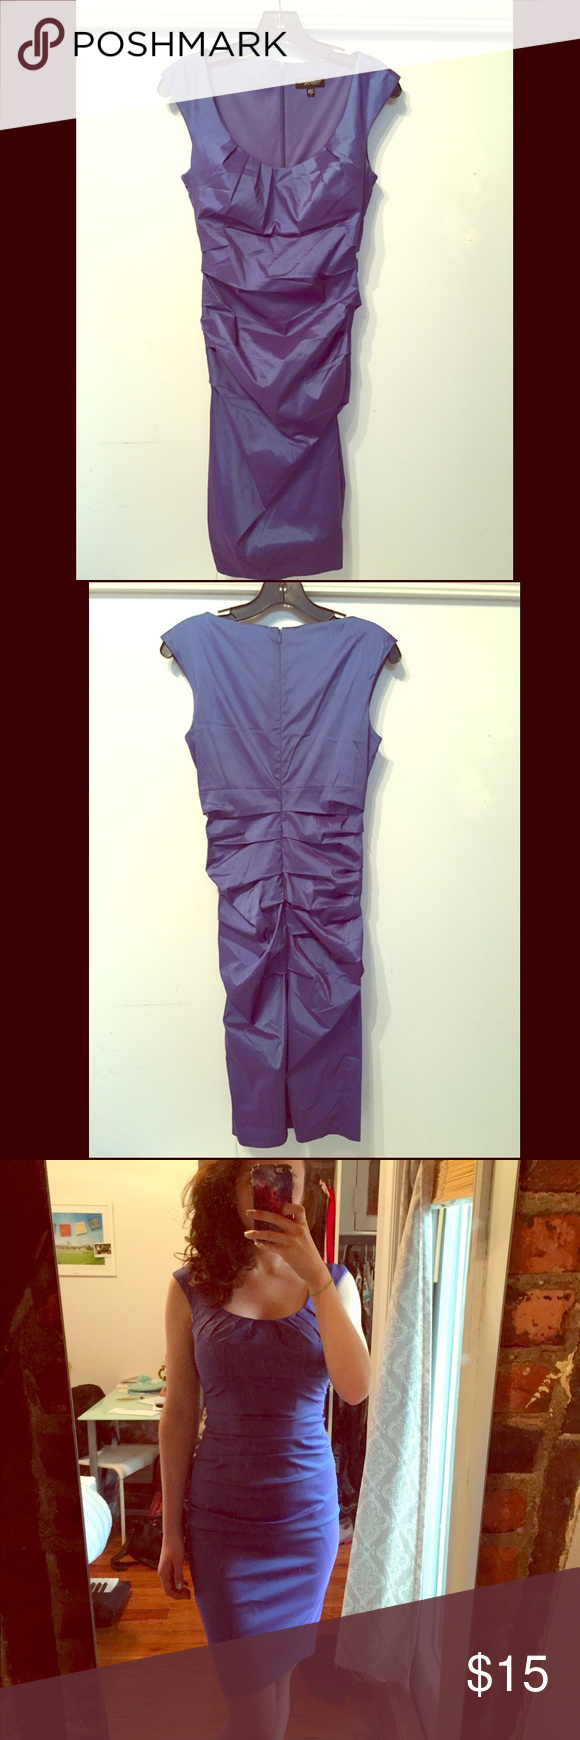 Blue ruched sleeveless dress Purple/blue sleeveless ruched dress size small (fits like a 2-4) Sangria Dresses